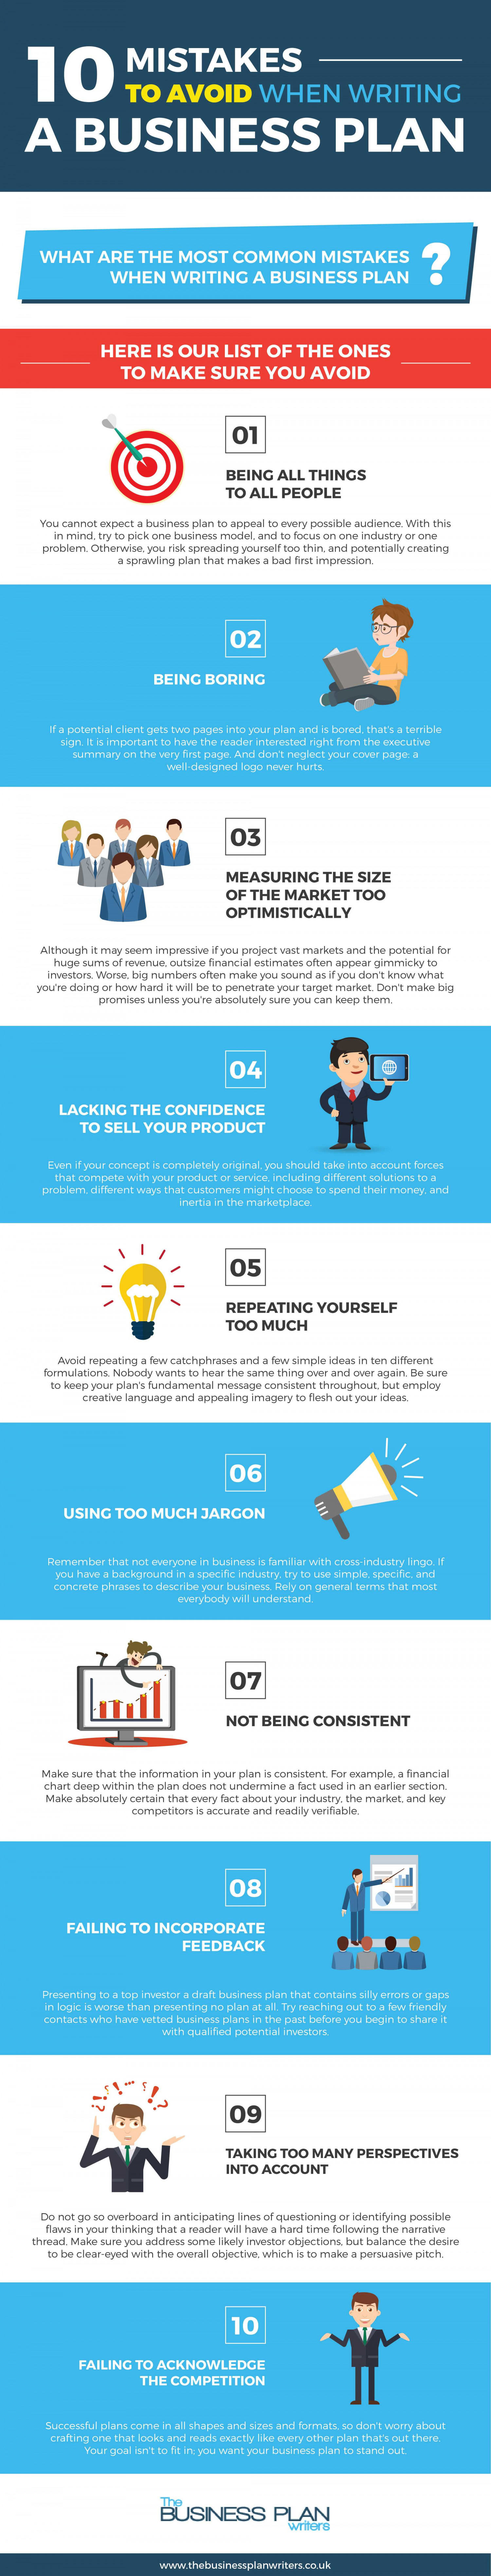 10 Mistakes to Avoid When Writing a Business Plan Infographic